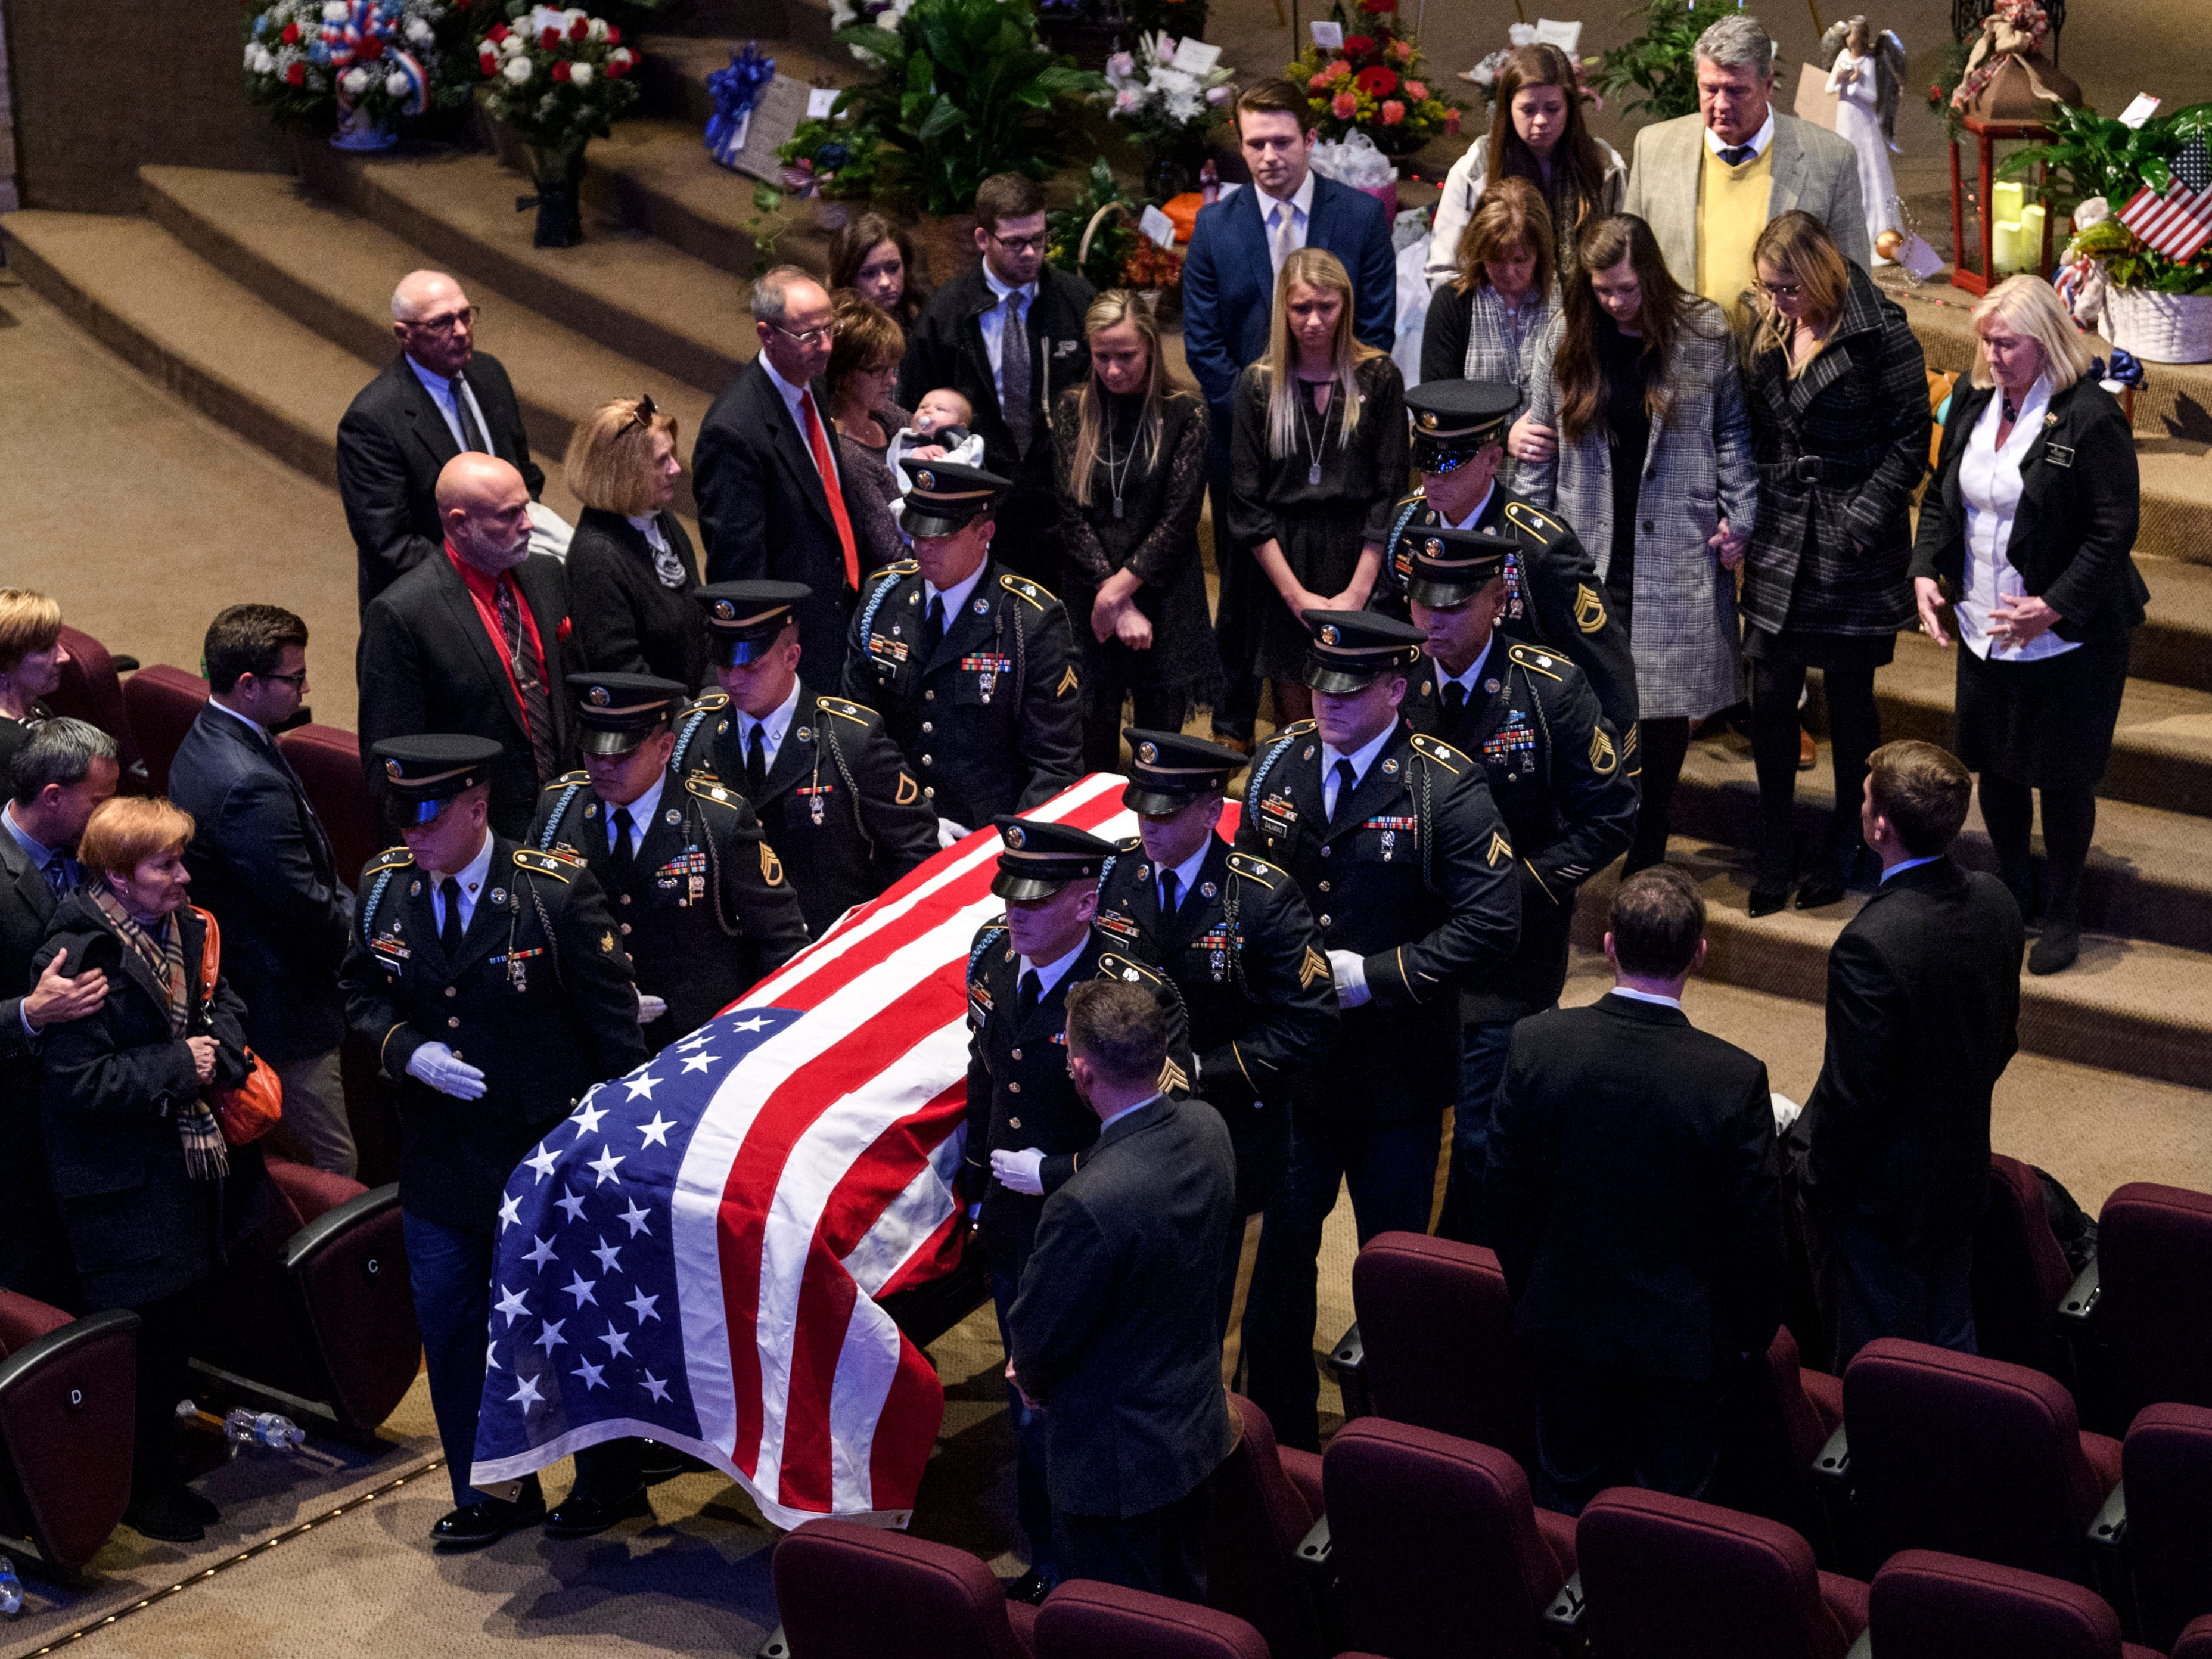 Evansville native Sgt. Drew Watters remembered as 'an incredible guy'